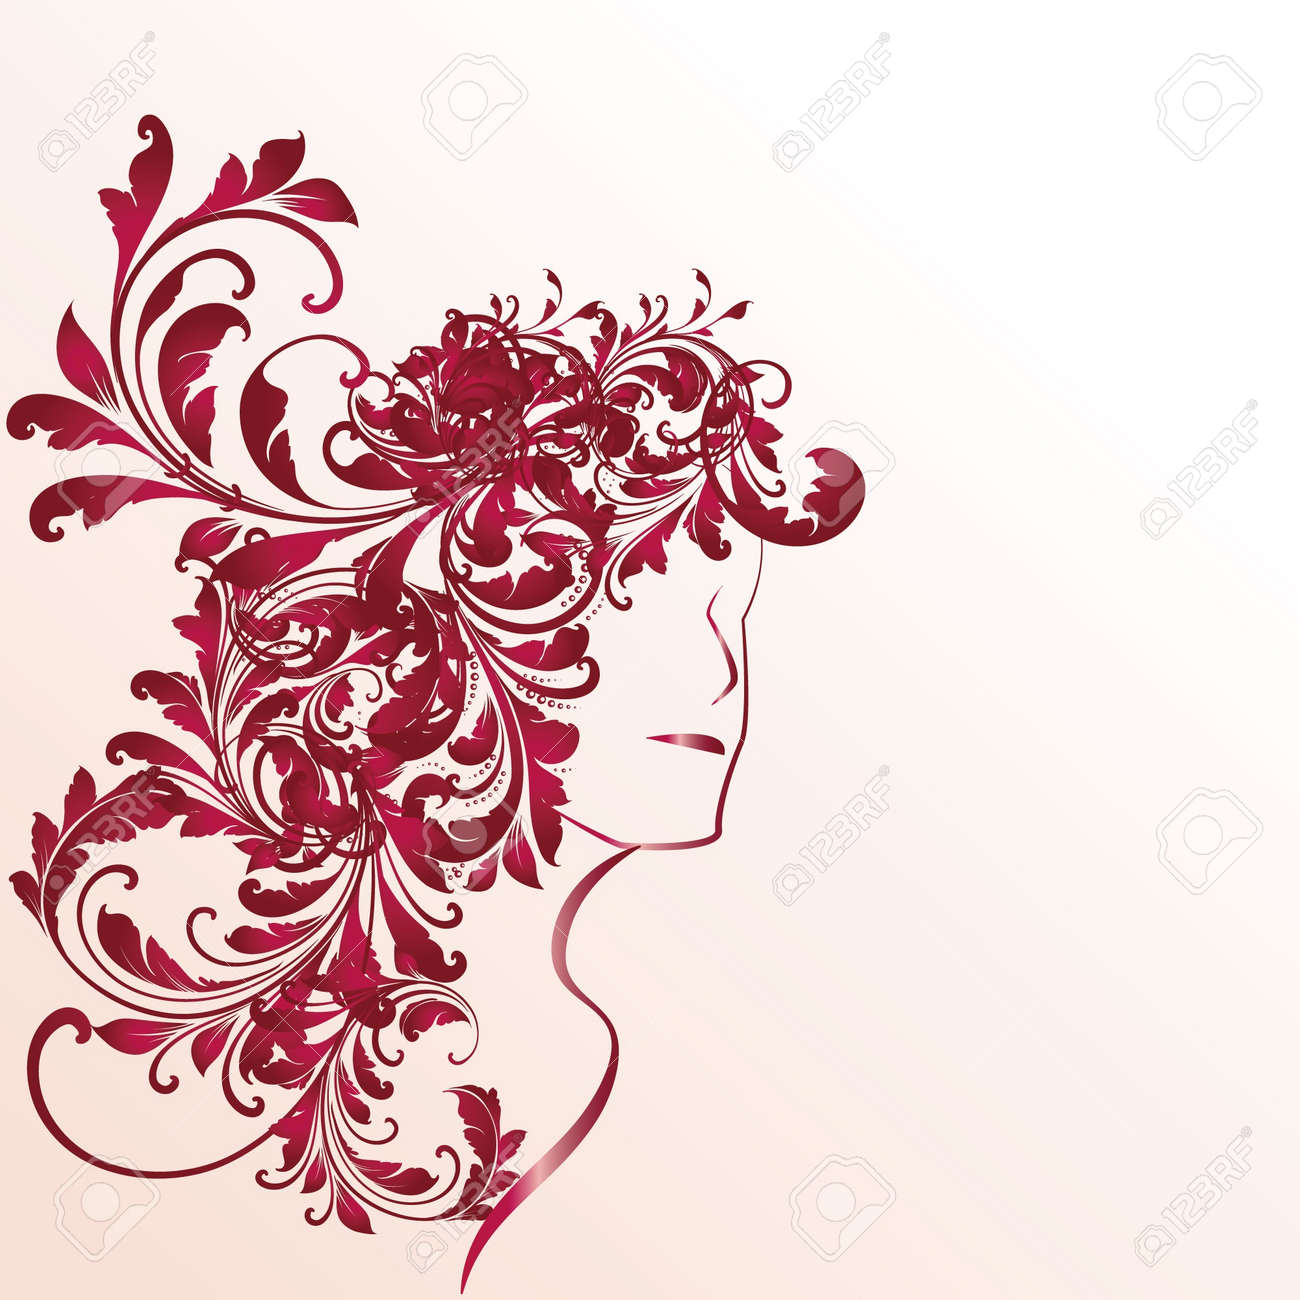 Profile of woman with long curly hair Stock Vector - 14230529